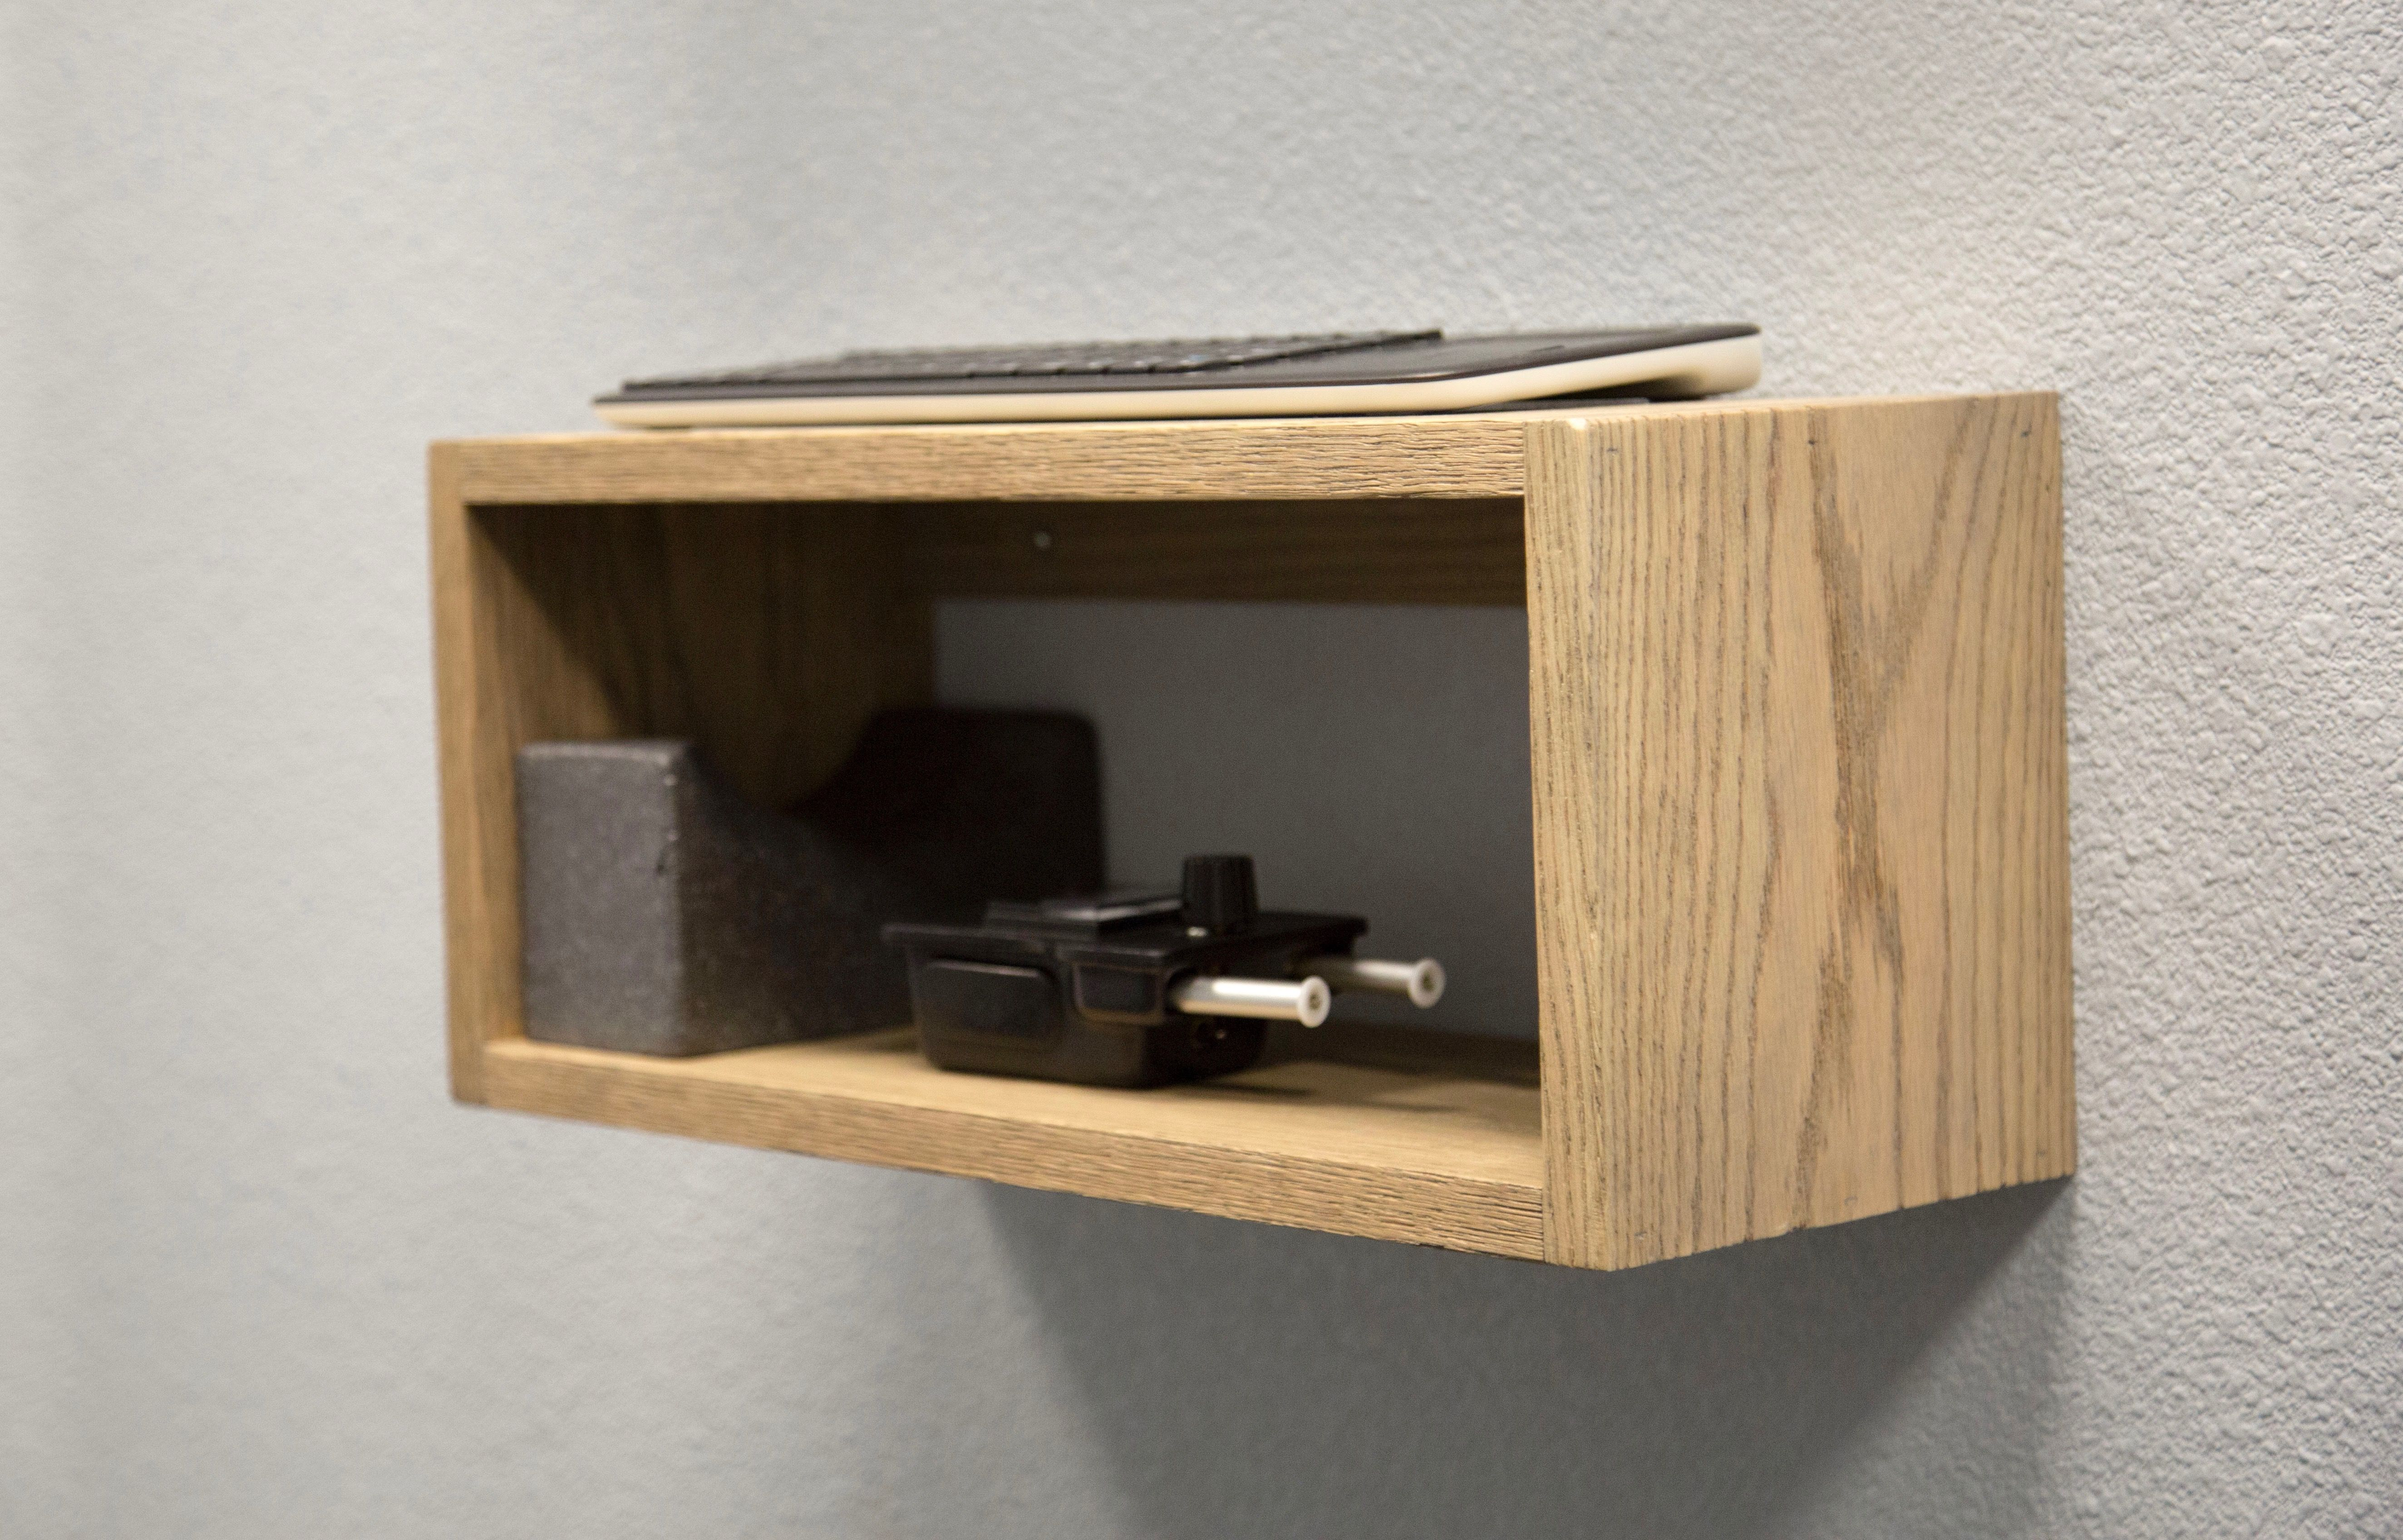 The multi-functional modern box on the wall under the touch AIO computer holds…